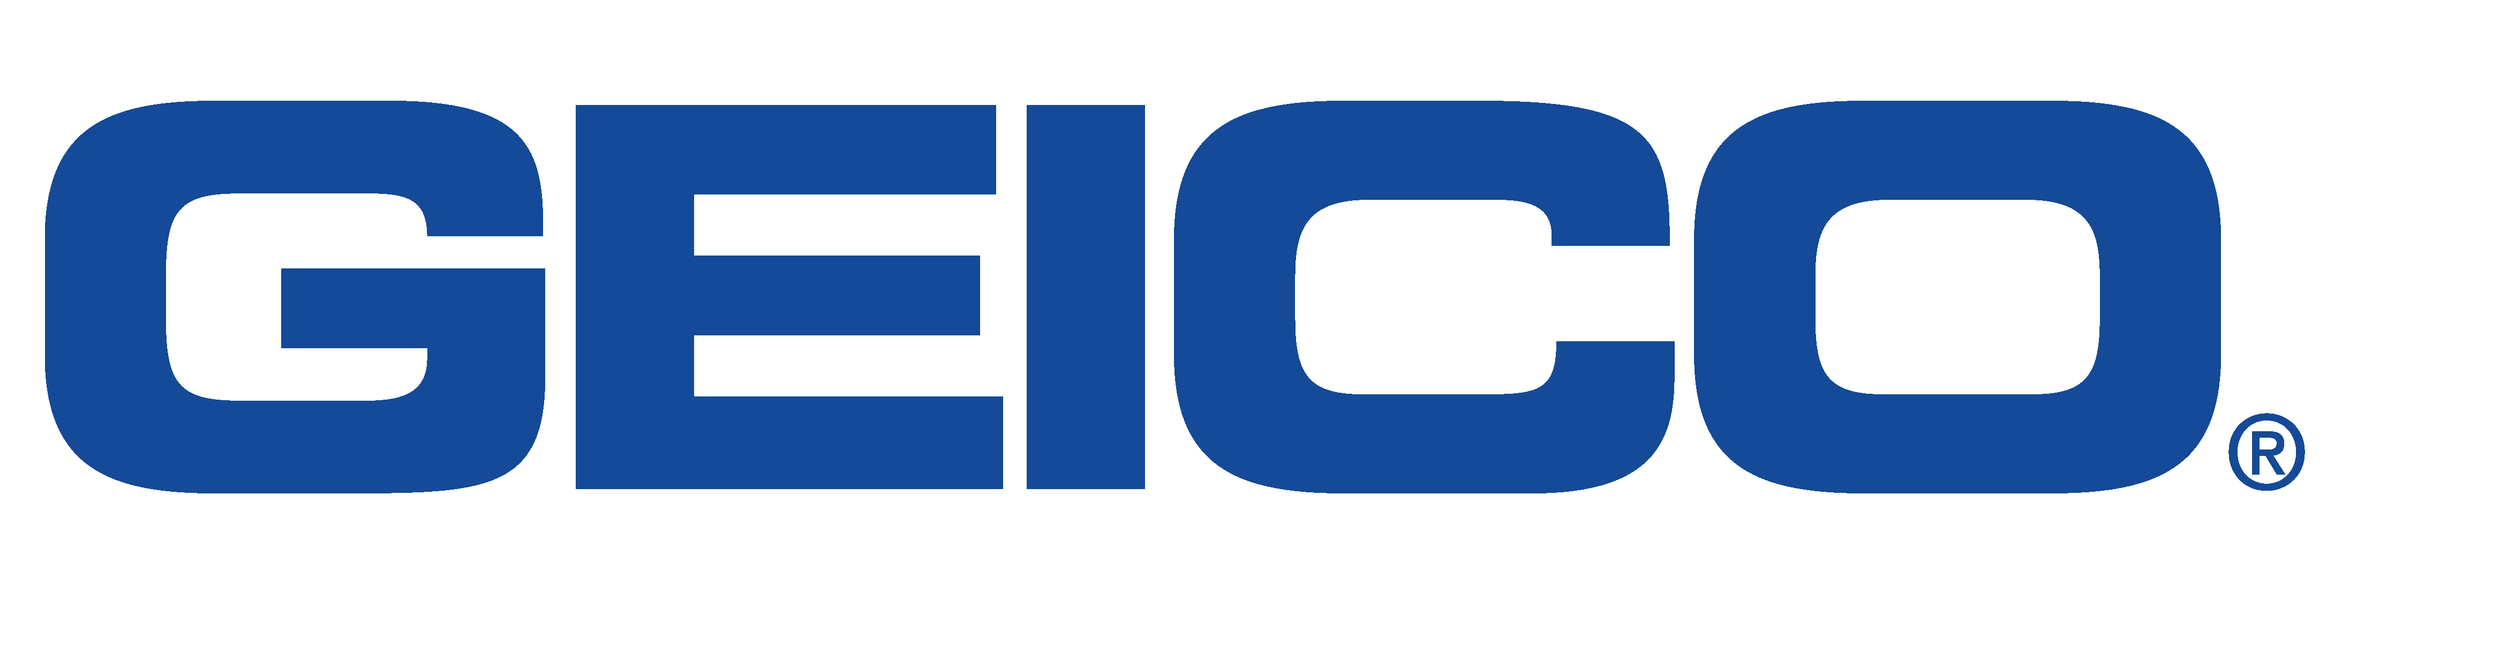 GEICO-Logo-for-Sponsors-Edited-Version-if-Needed.png